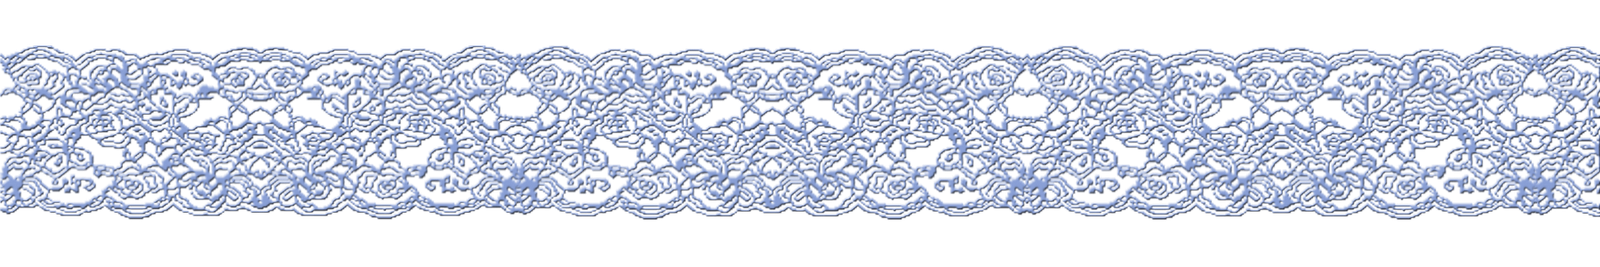 Lace Border Png Transparent | www.imgkid.com - The Image ...